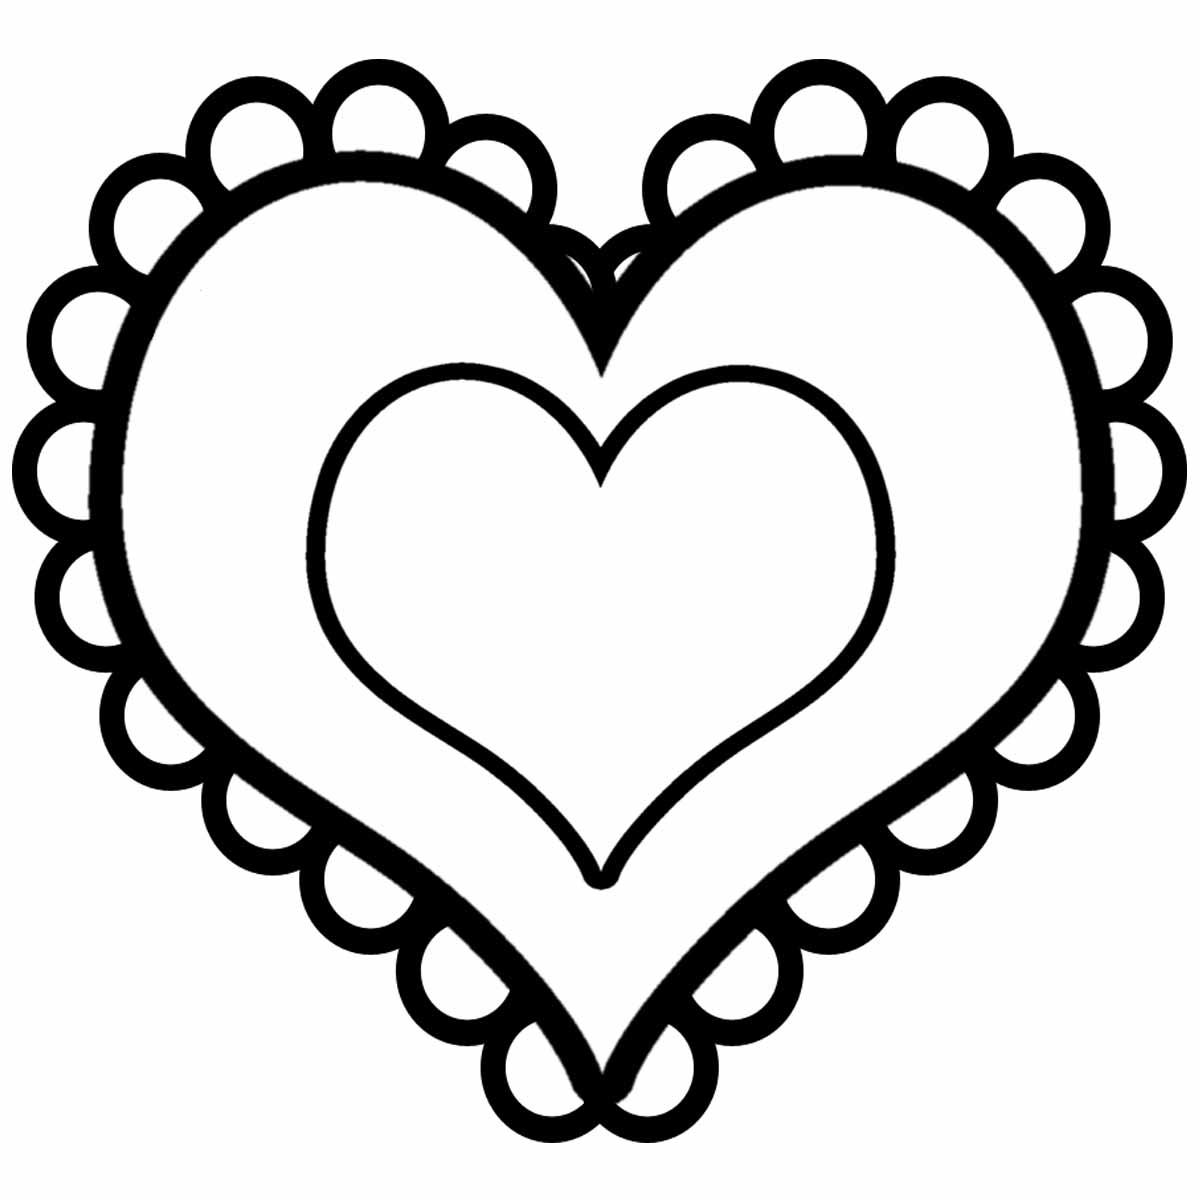 heart color page free printable heart coloring pages for kids heart color page